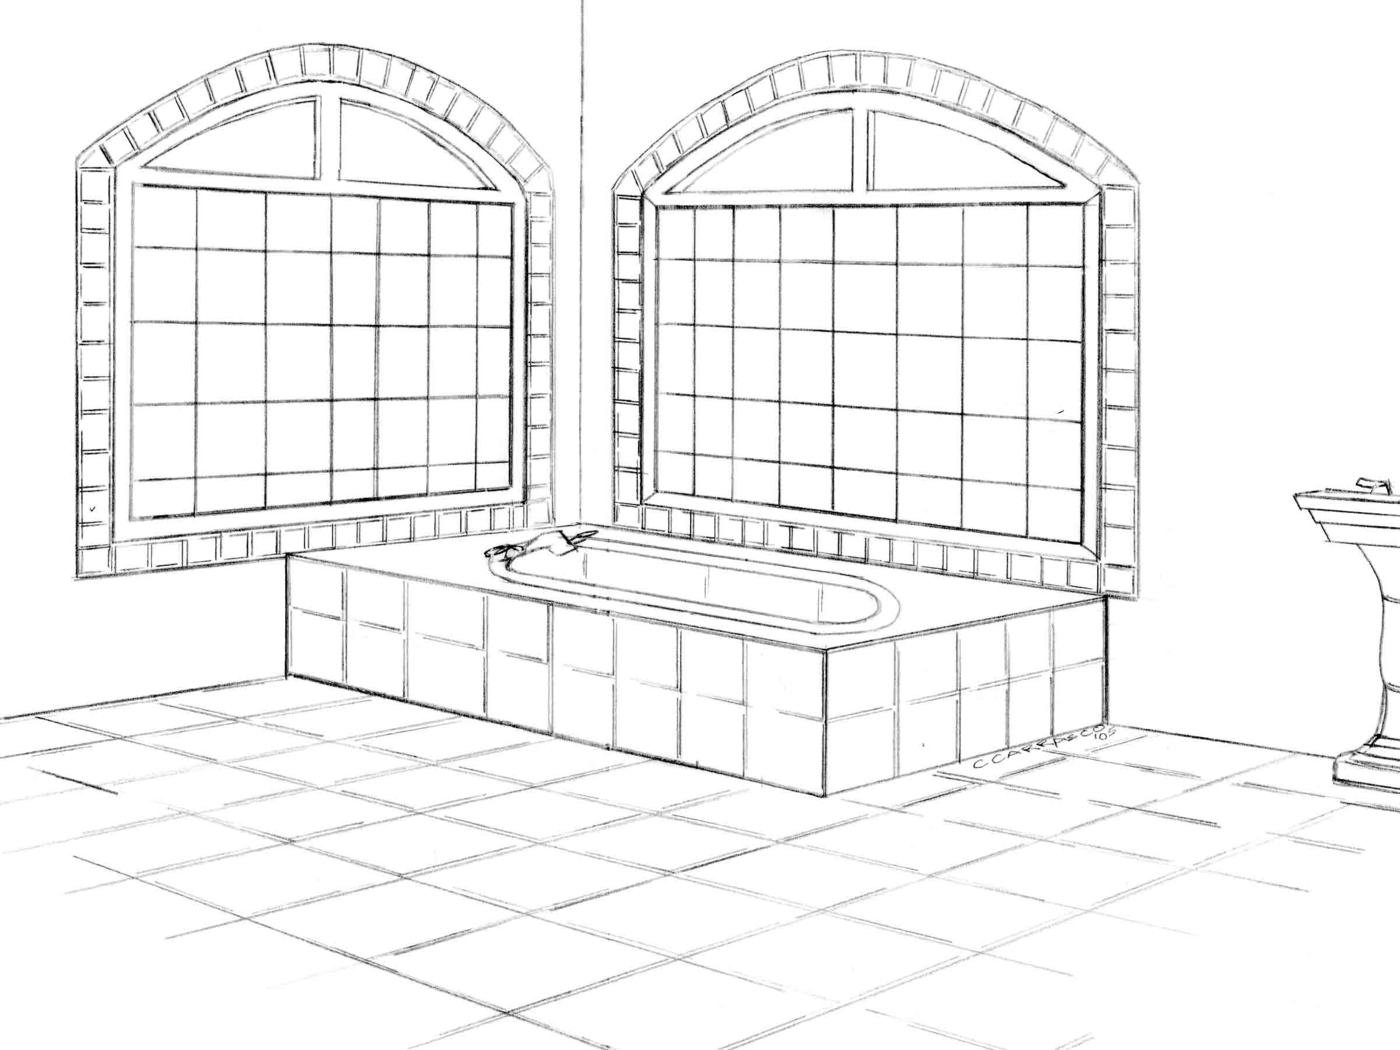 carleen carrasco illustrations by hand by carleen carrasco at Glass Dog Tile master bathroom spanish colonial perspective drawn by hand in pencil before rendered